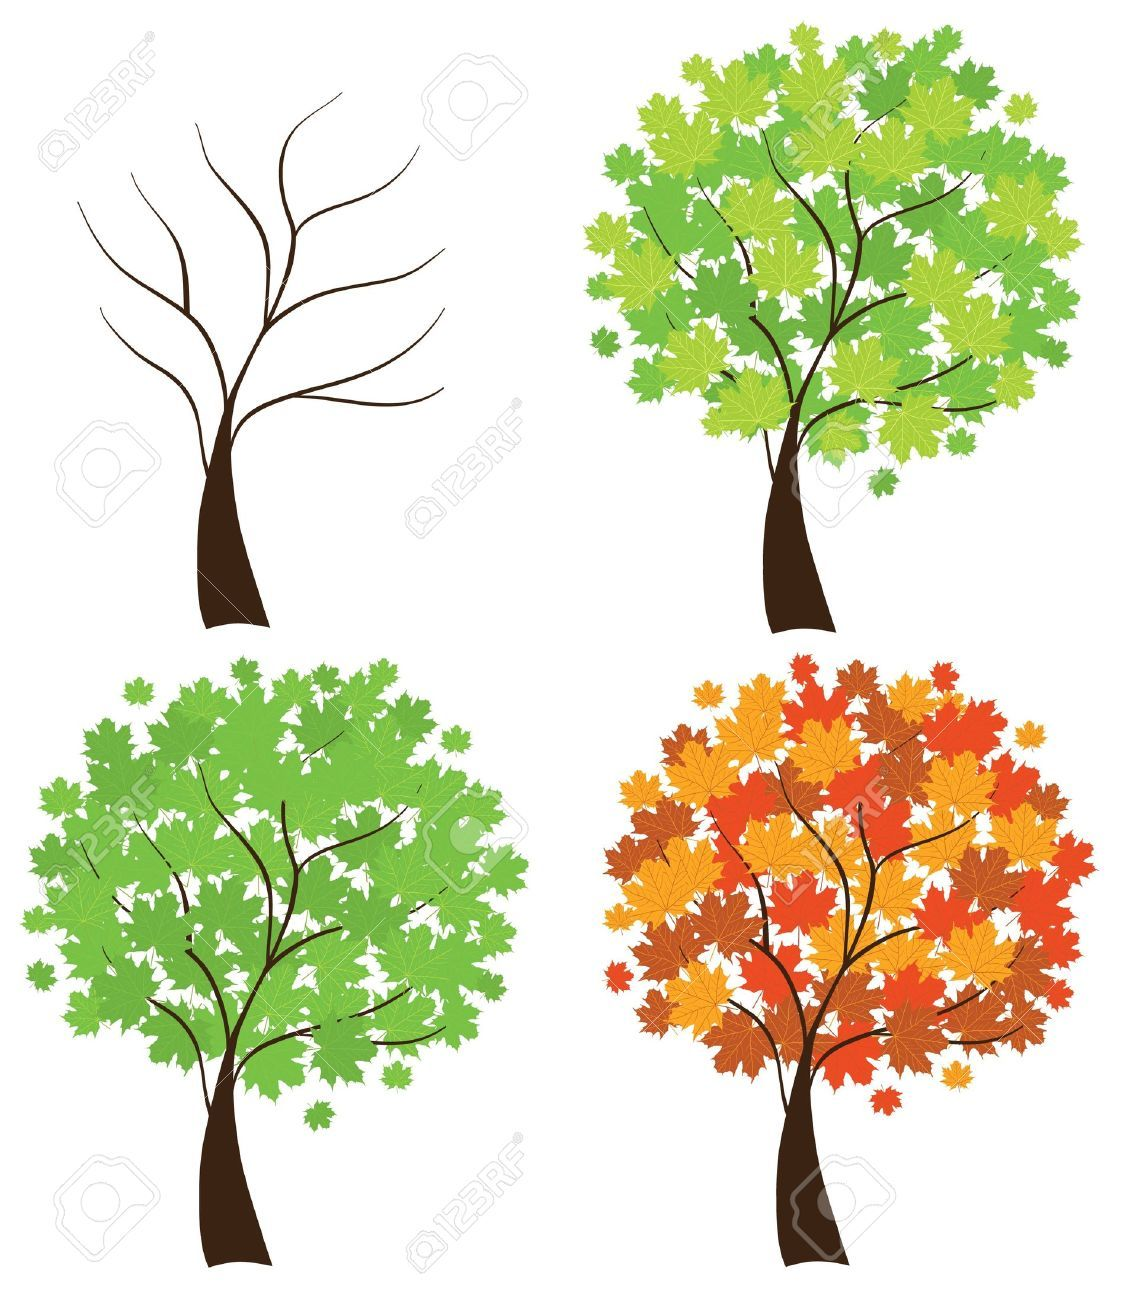 Trees in Different Seasons Four Season Maple Trees Tree | Hand ...